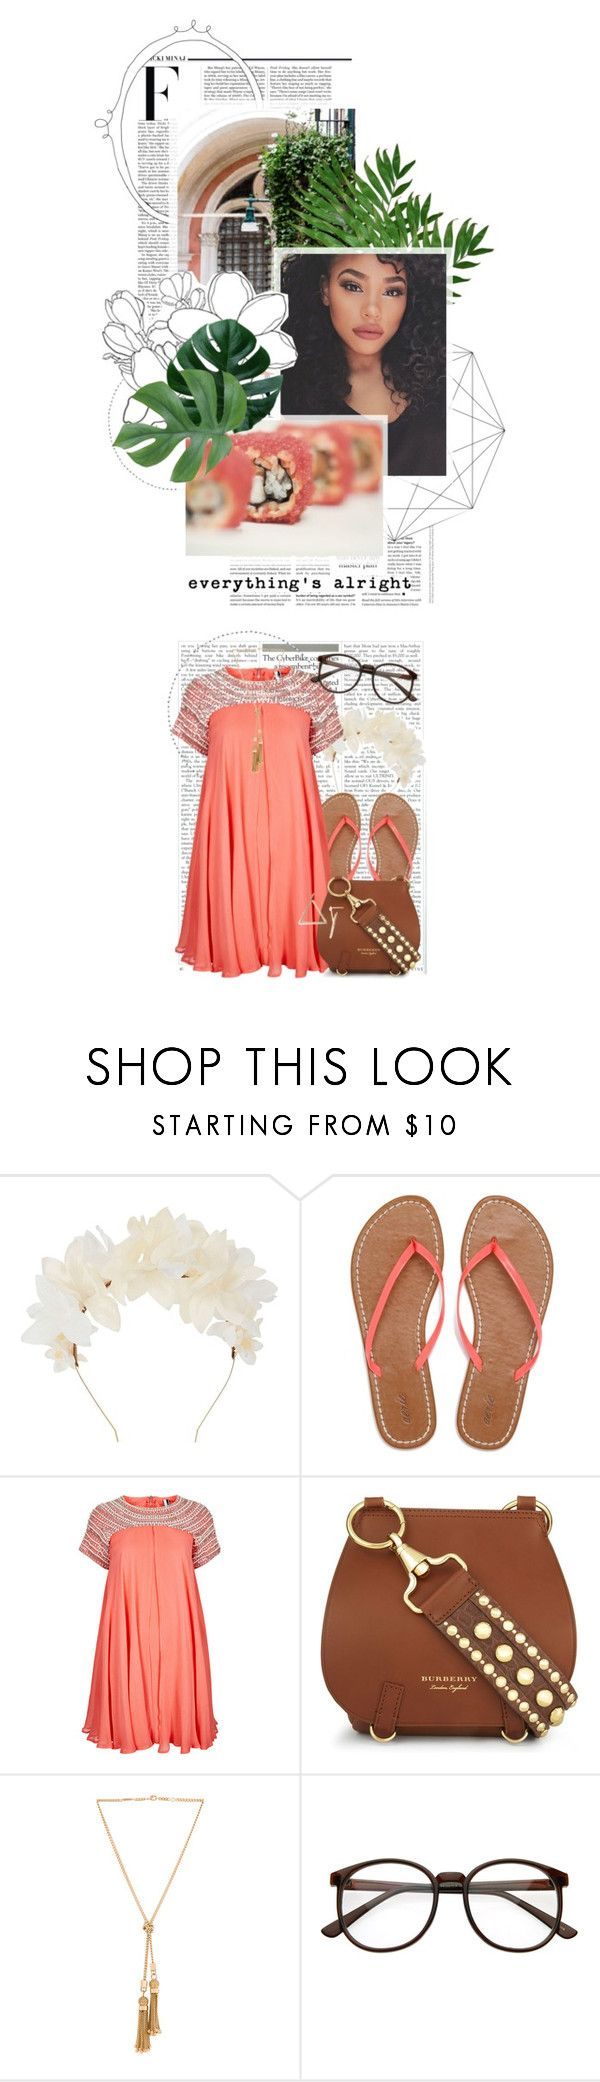 """""""NEW! CONTEST: Color Gallery!"""" by crystal85 ❤ liked on Polyvore featuring Nicki Minaj, Lizzie Fortunato, American Eagle Outfitters, Topshop, Burberry, Chloé and Bony Levy"""